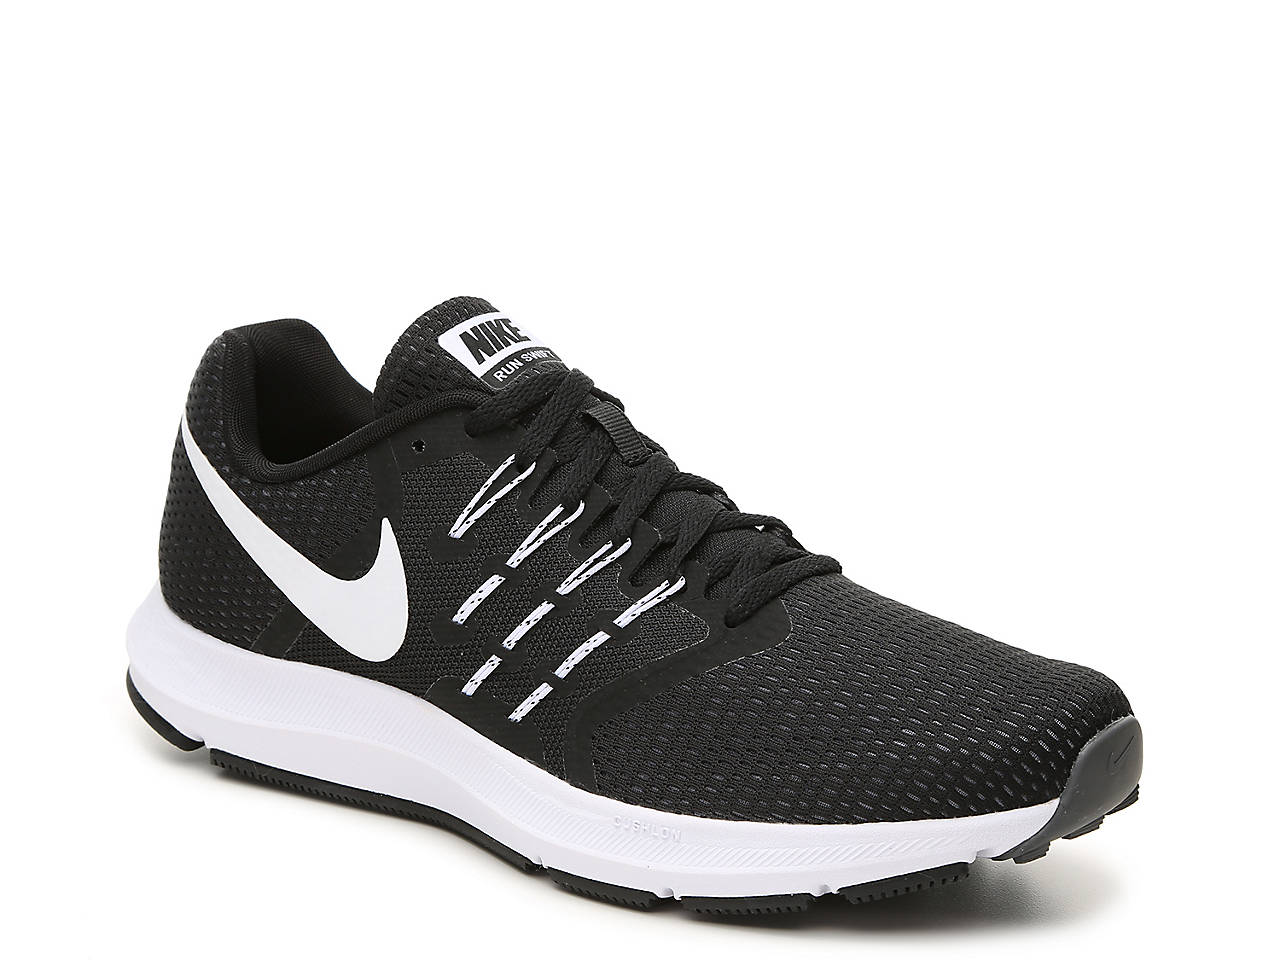 more photos 4d06a 04002 Nike Run Swift Lightweight Running Shoe - Men s Men s Shoes   DSW